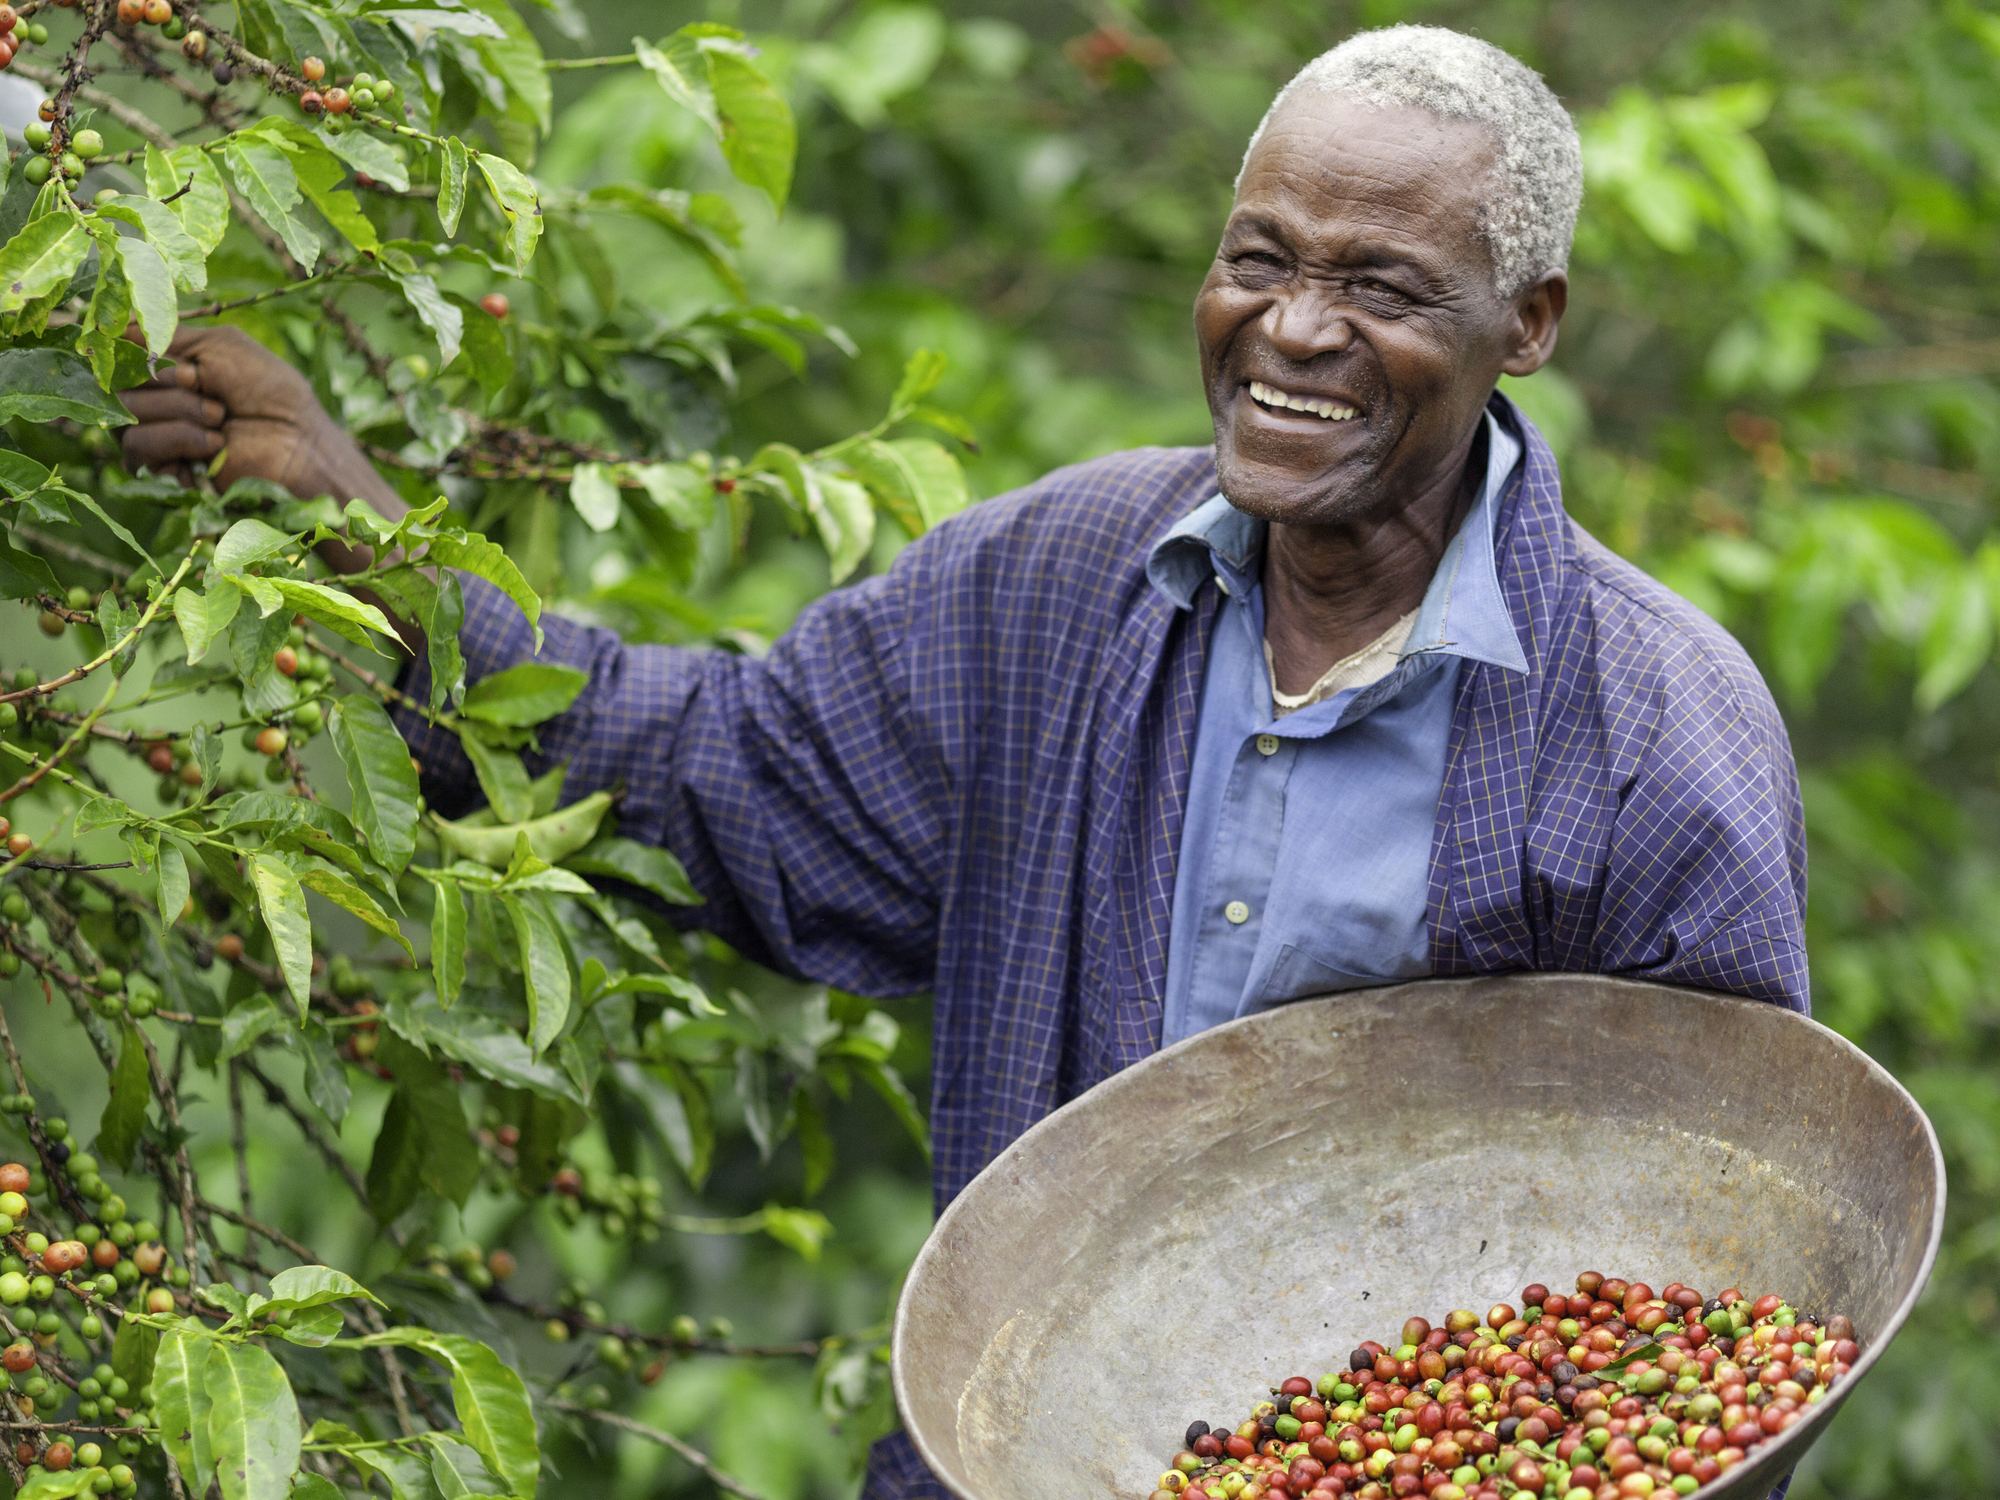 Smiling Kenyan man picking coffee on a shade-grown coffee plantation